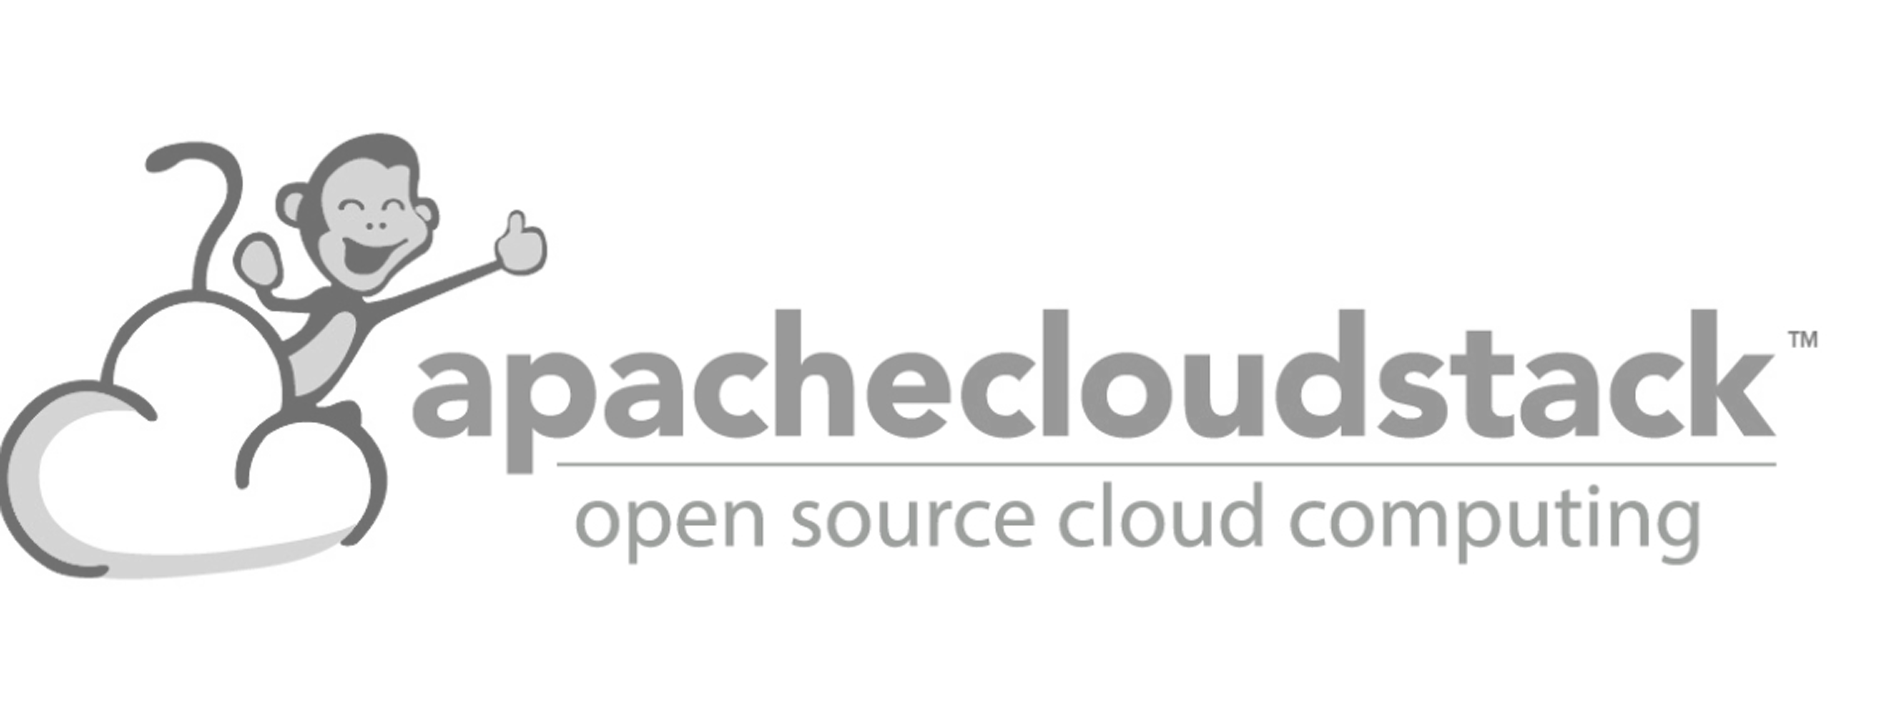 apache cloud stack